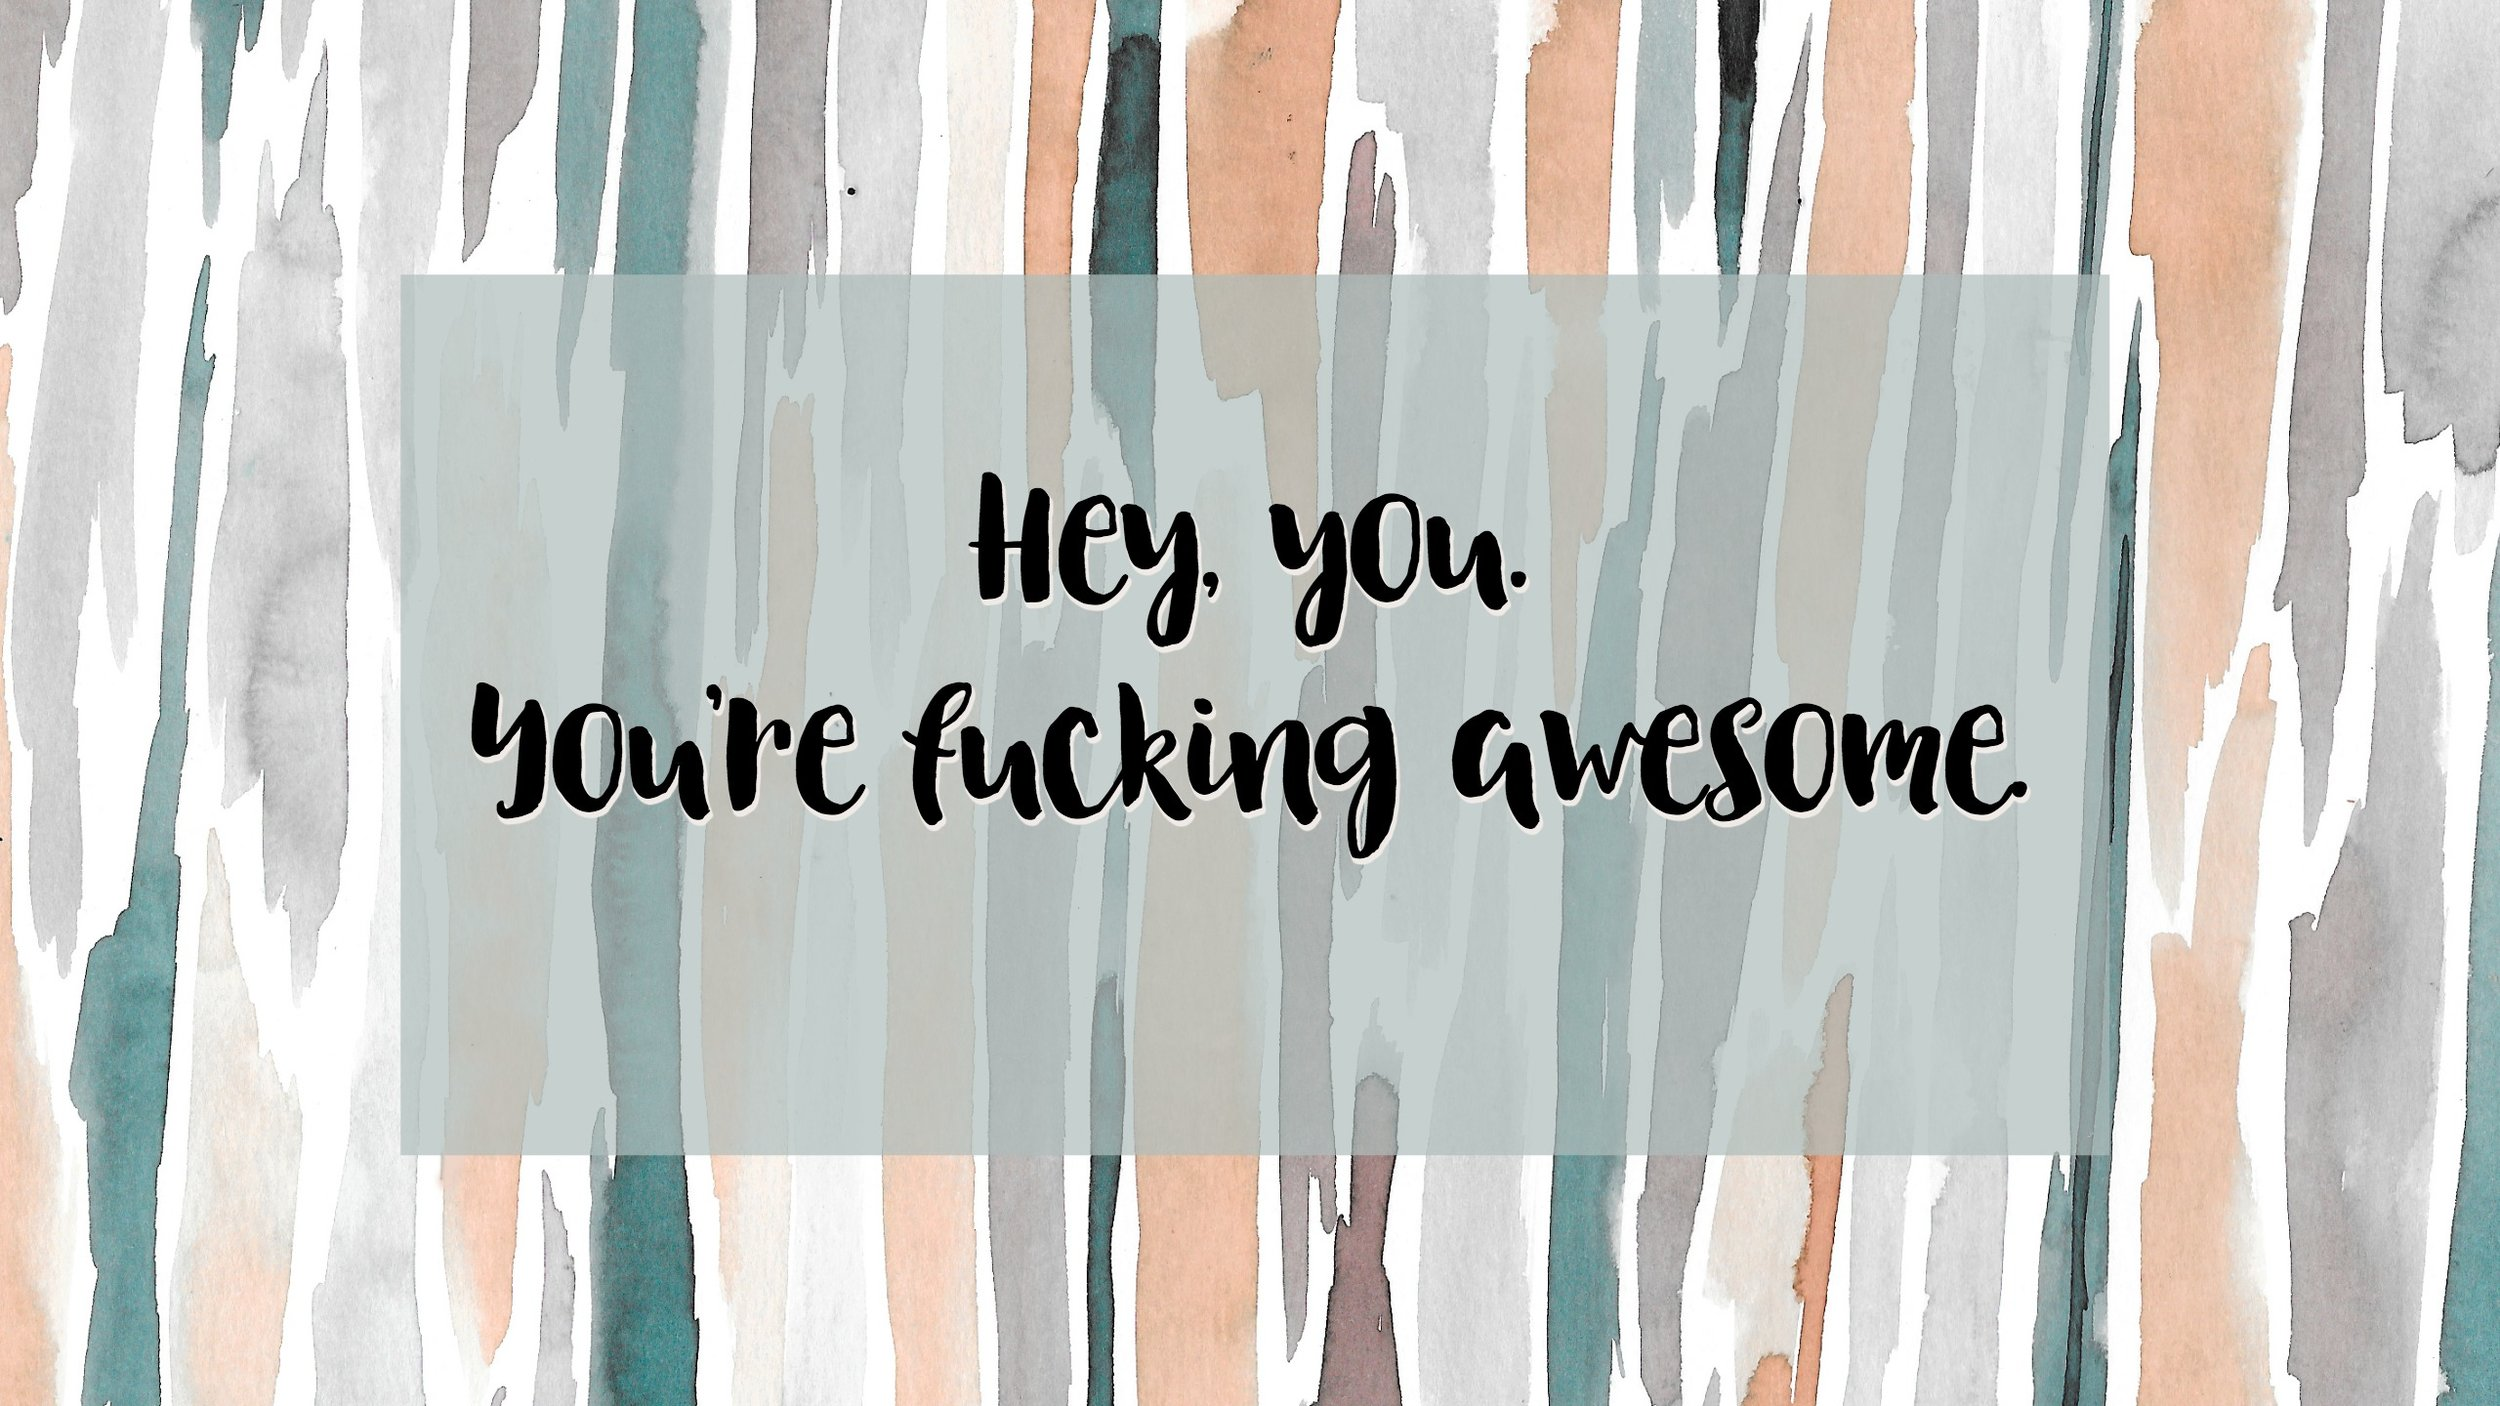 Youre fucking awesome.jpg